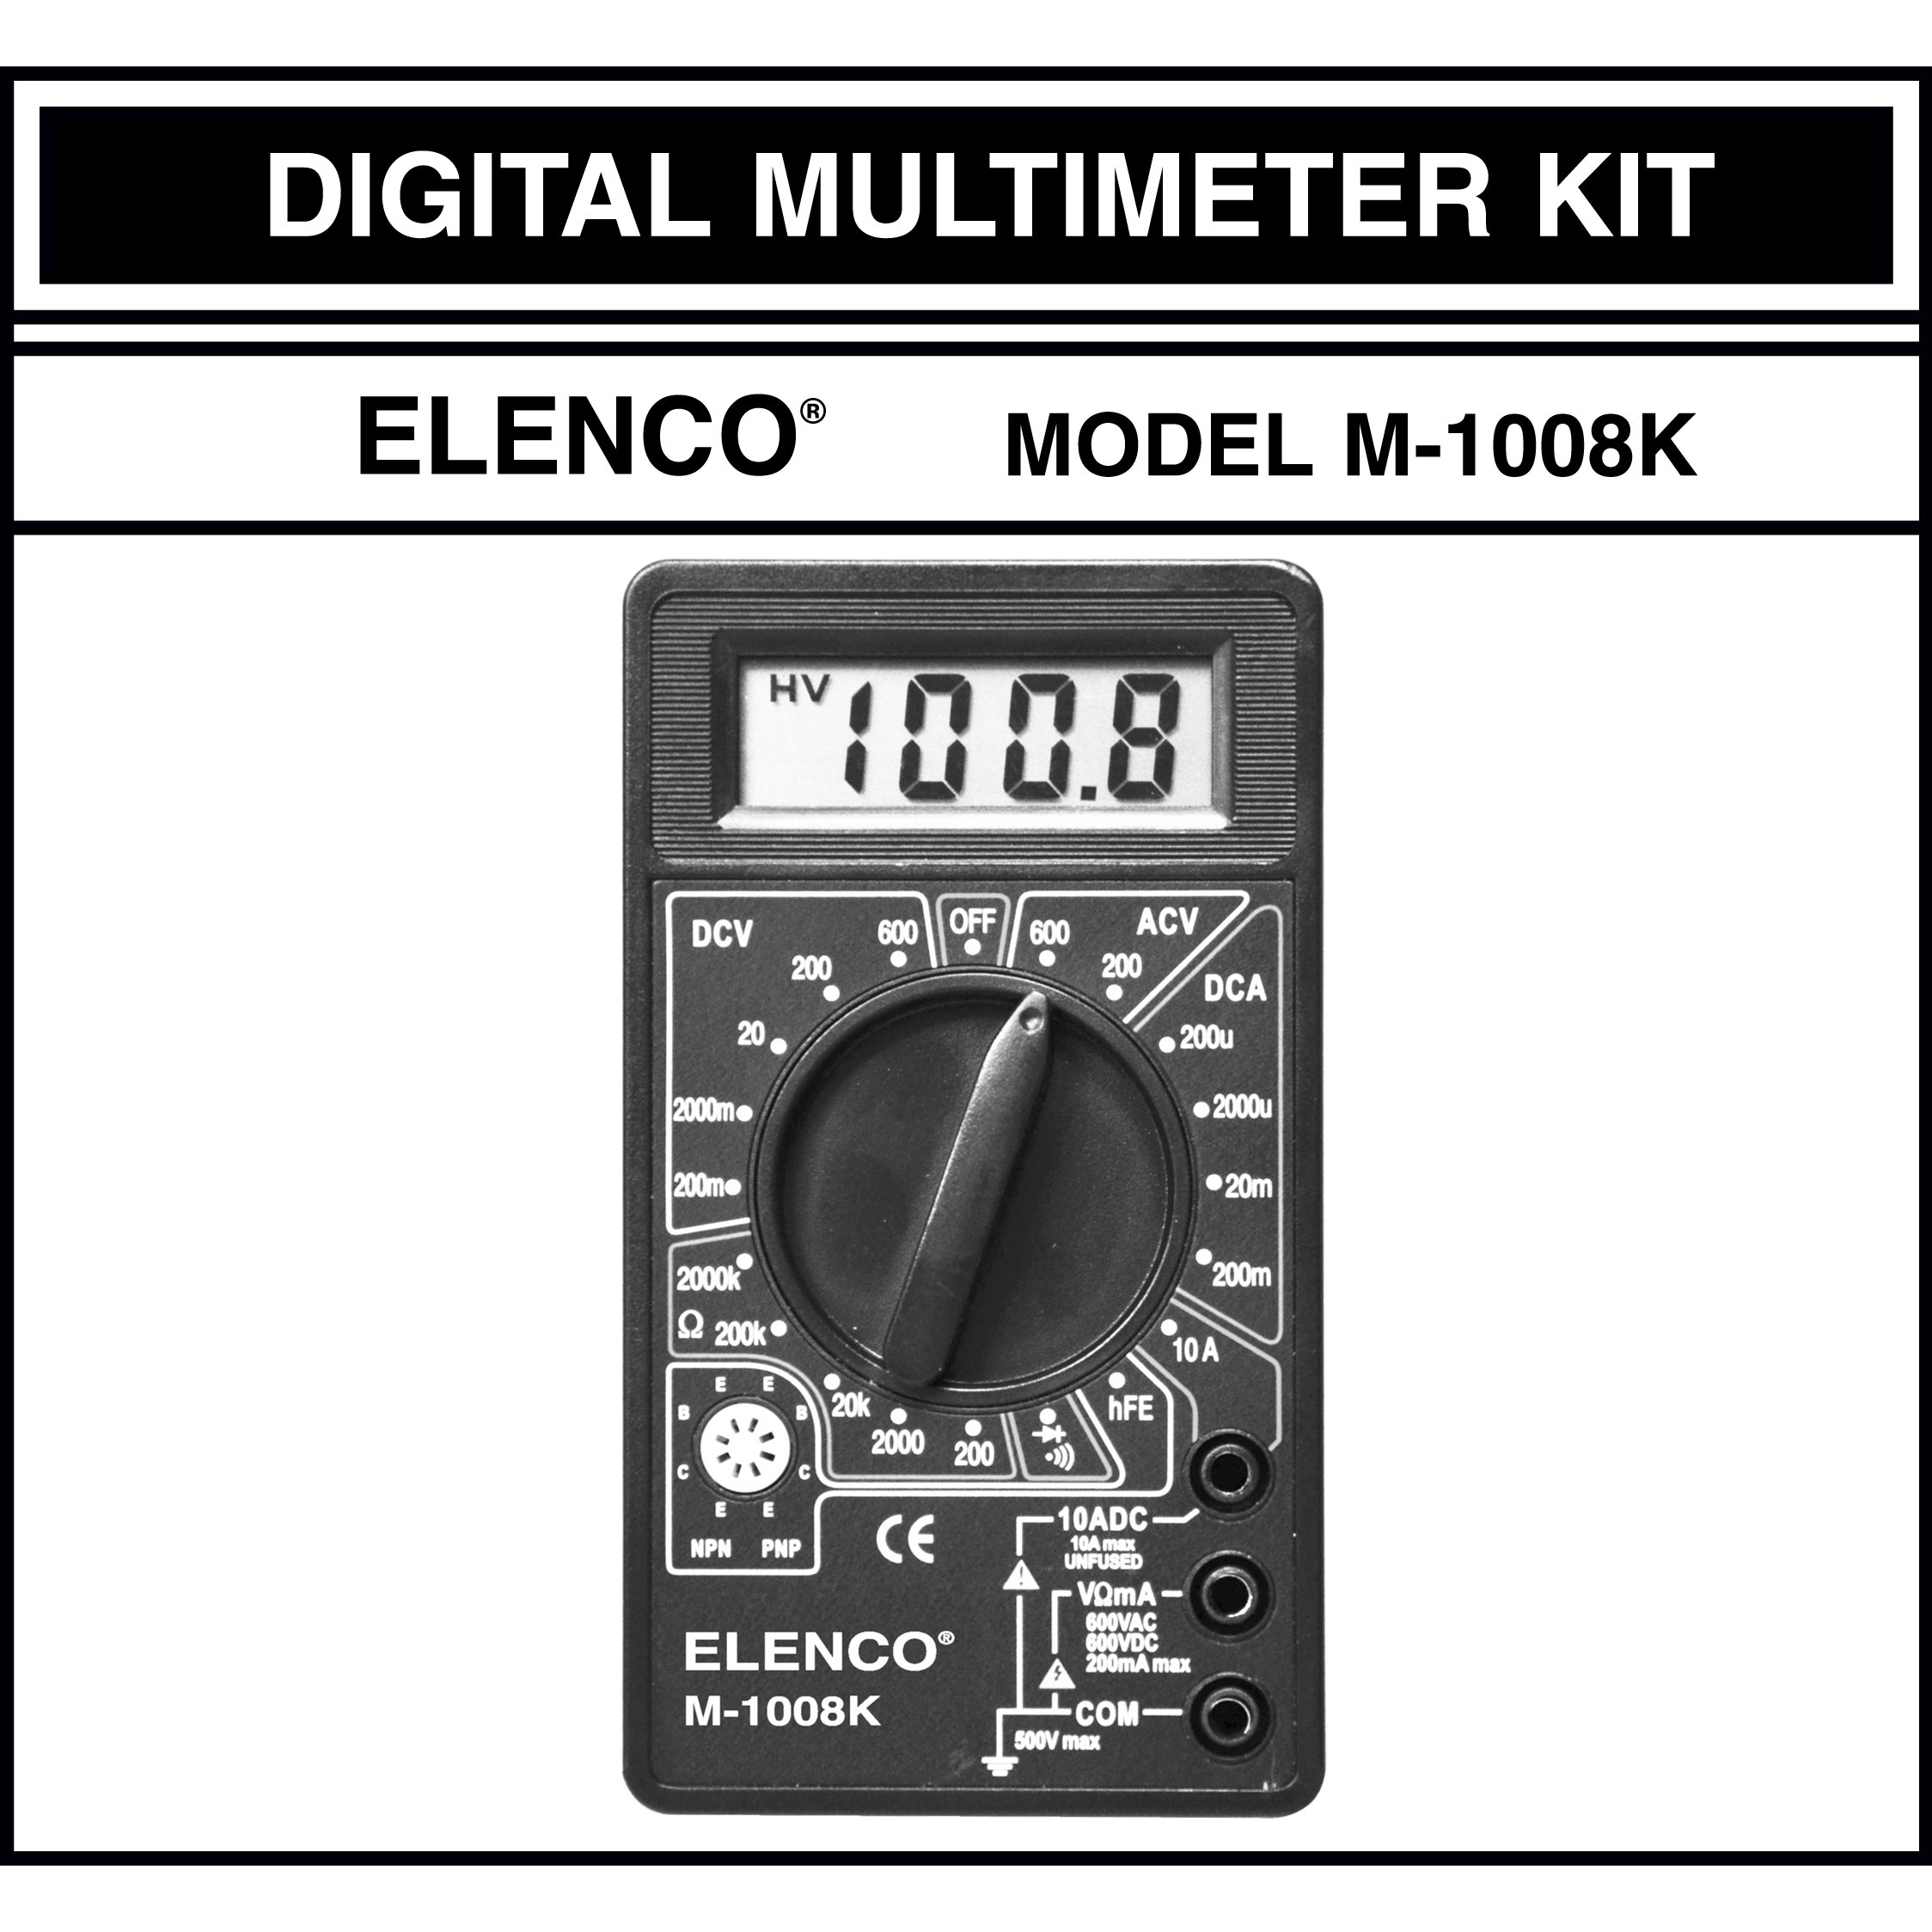 Elenco M-1008K - Digital Multimeter Solder Kit | Lead Free Solder | Great STEM Project | Soldering Required by Elenco (Image #3)